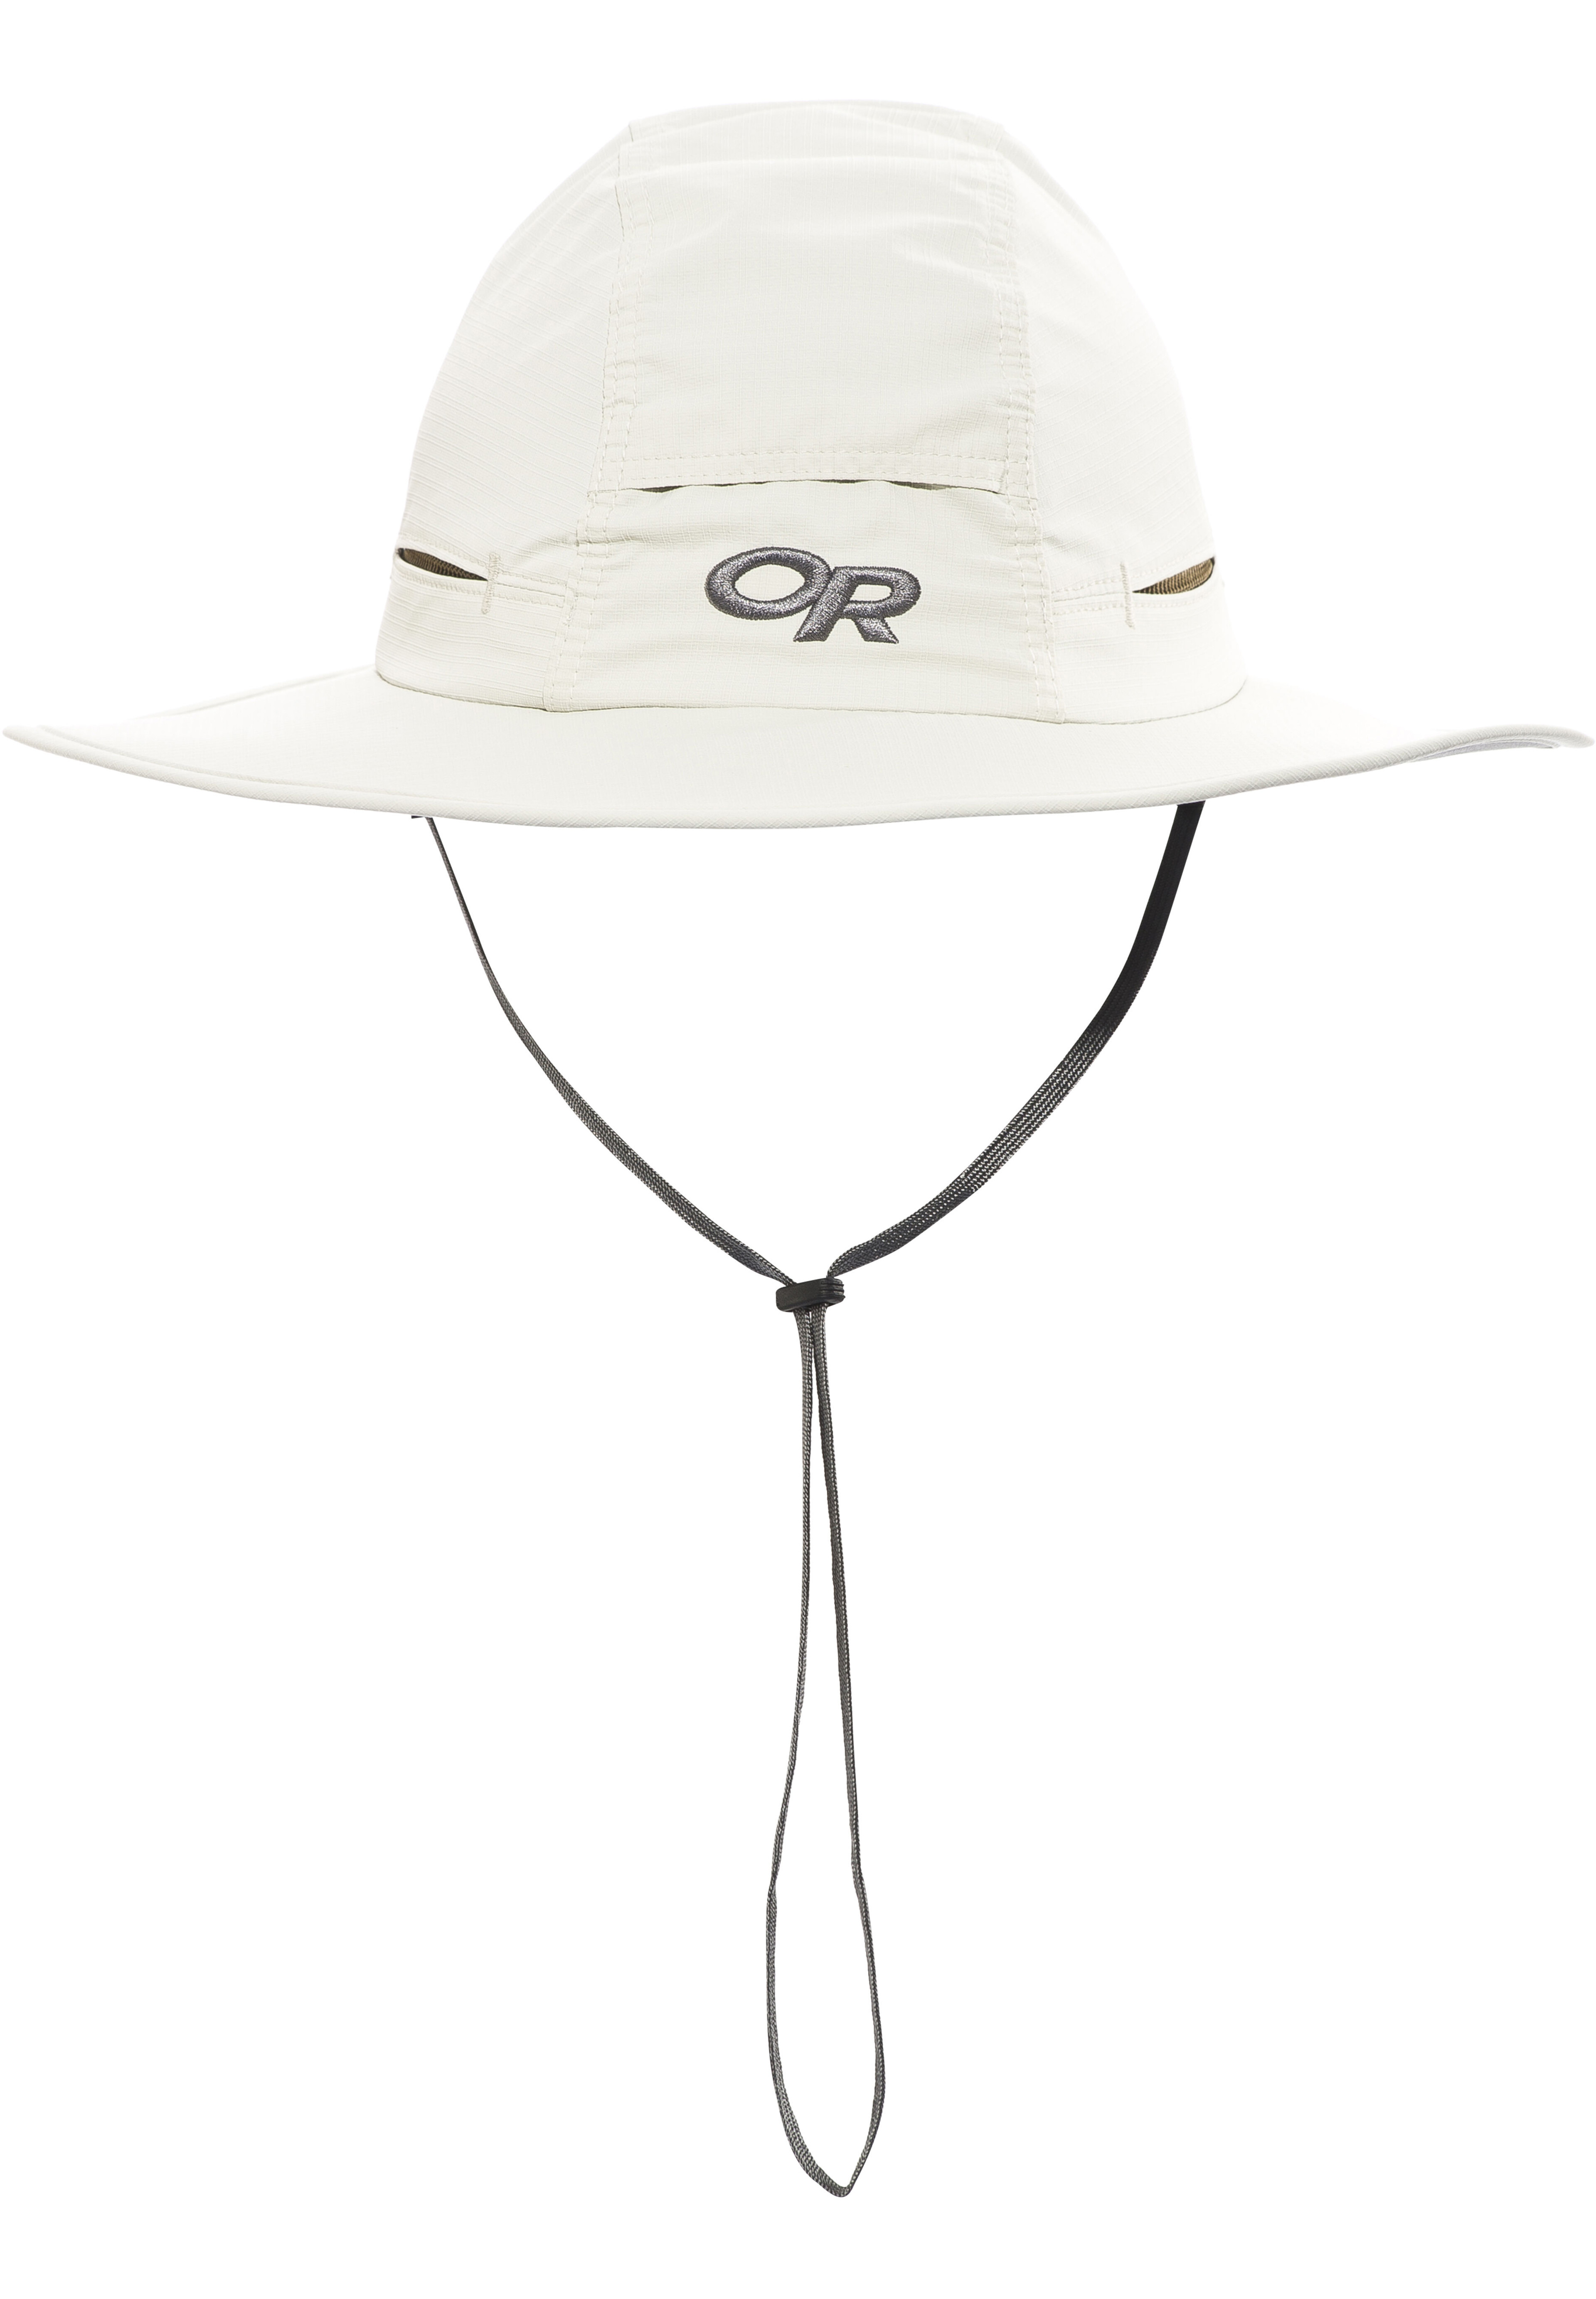 dfeae58e Outdoor Research Sombriolet Sun Hat sand | campz.ch